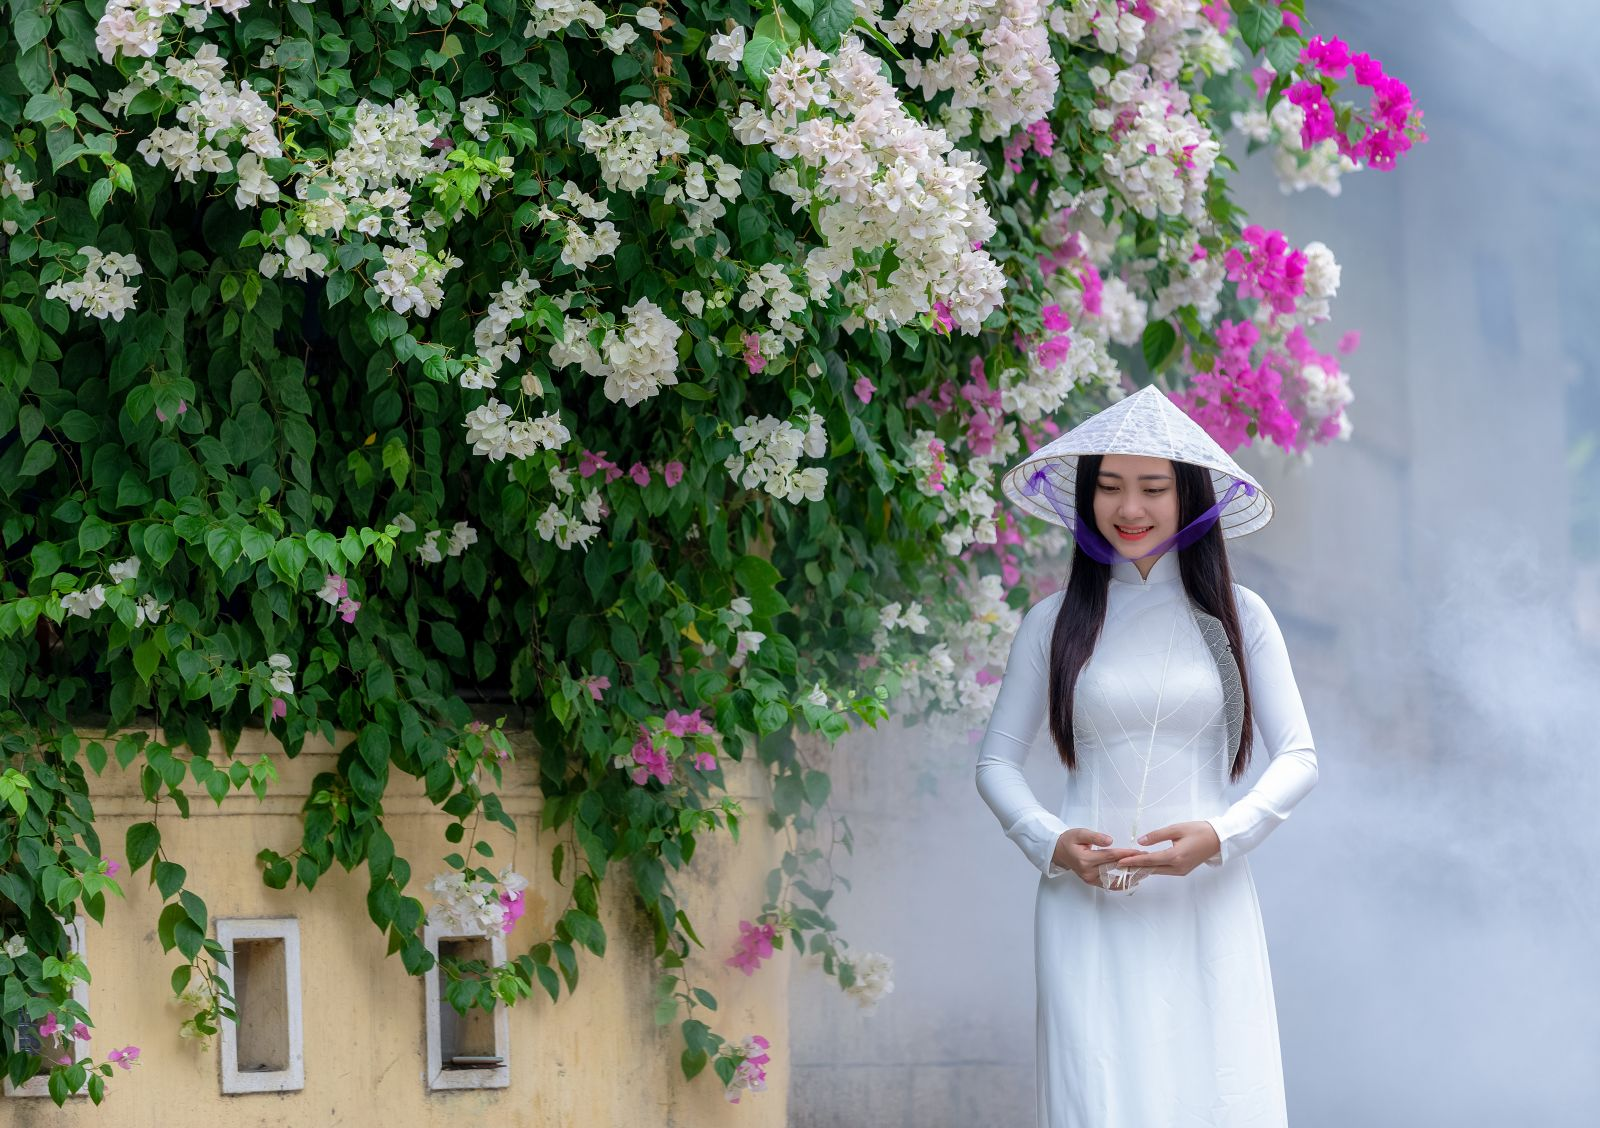 The transparent leaf veins conical hat combined with white ao dai creates the special and unique beauty of Hue.